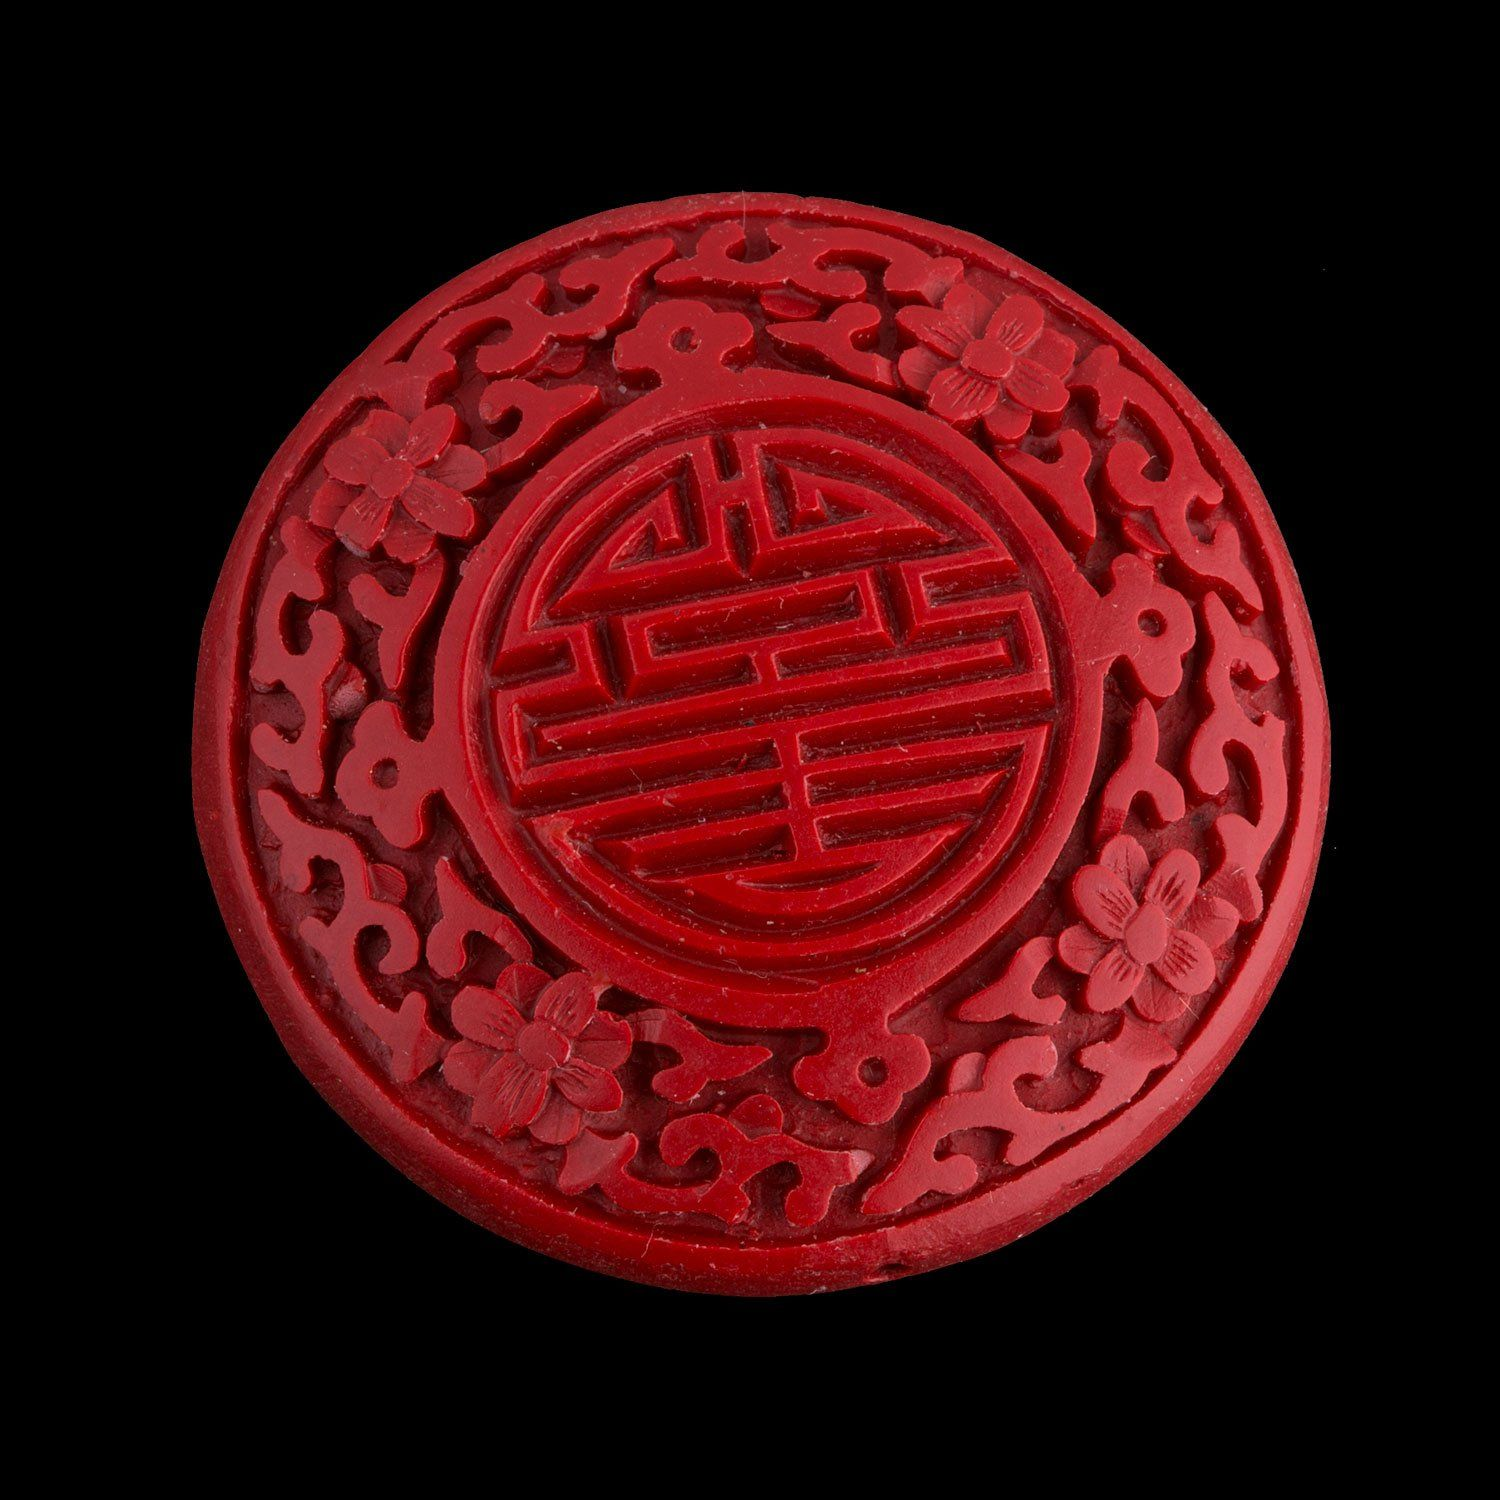 Bright Red Carved Cinnabar Blessing Beads 3 Sizes Carved Lacquer-Ware Flower Floral Blessing Red Cinnabar Beads 10 Cinnabar Beads KU33